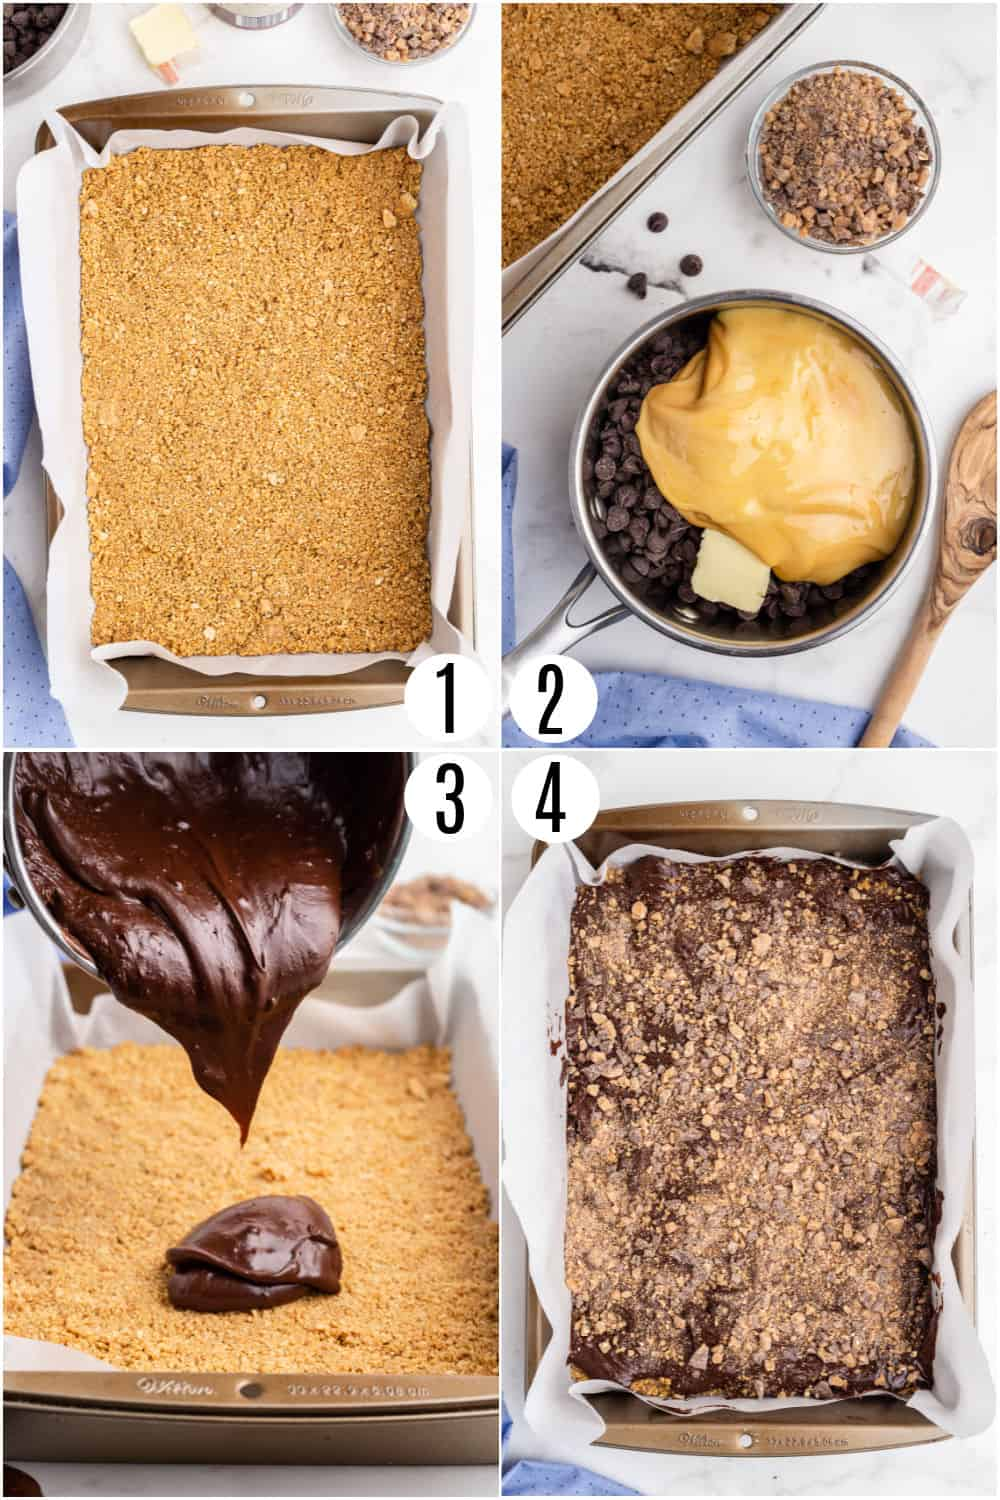 Step by step photos showing how to make toffee fudge bars.